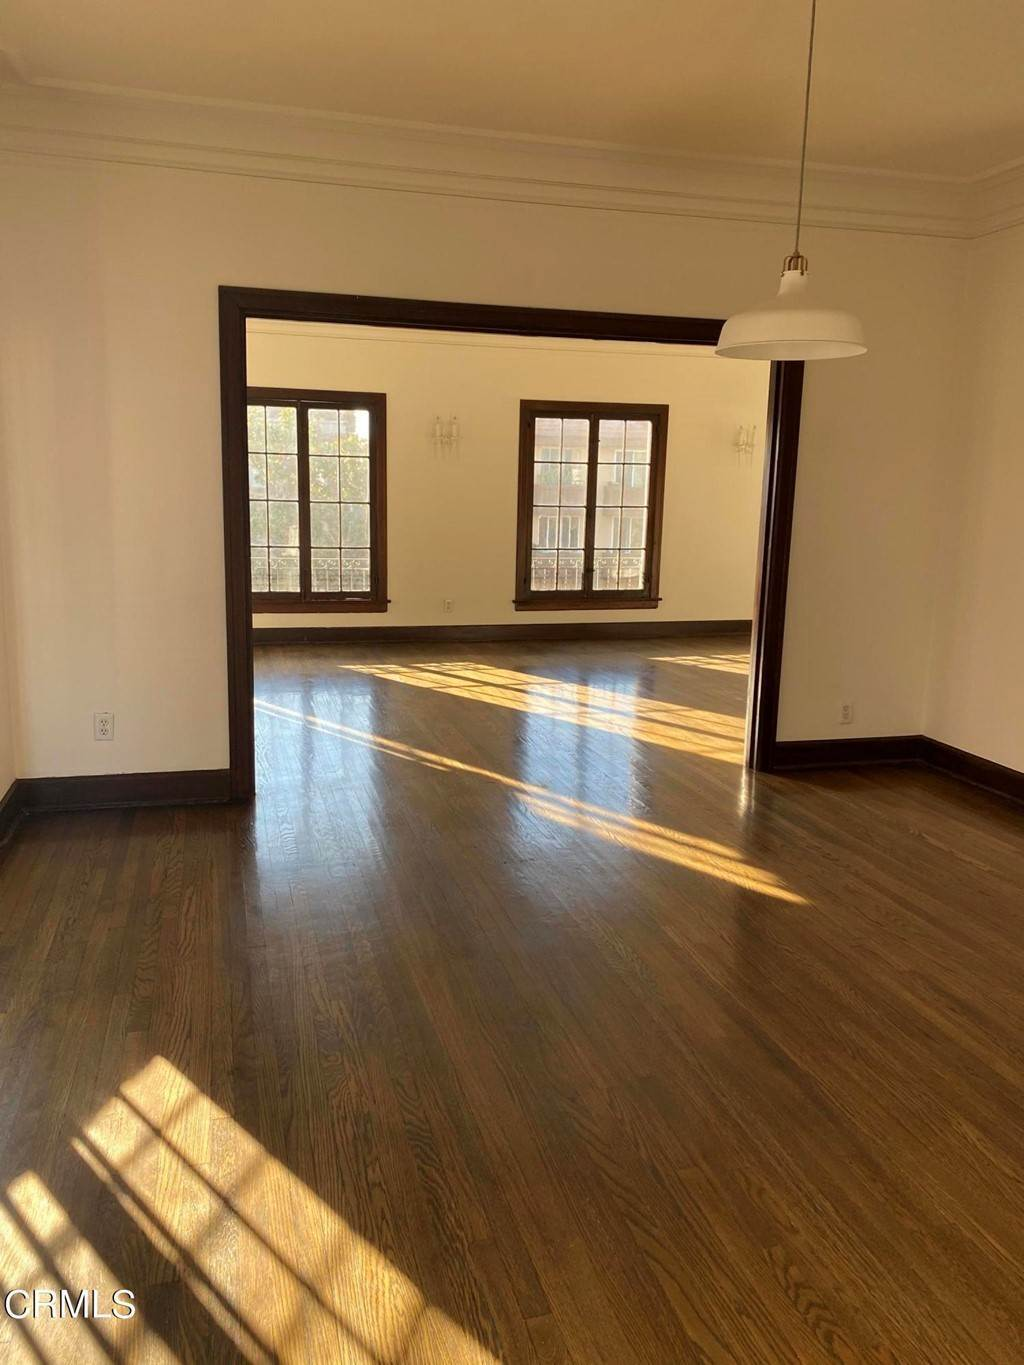 Residential Lease at S Berendo Street Los Angeles, California 90004 United States